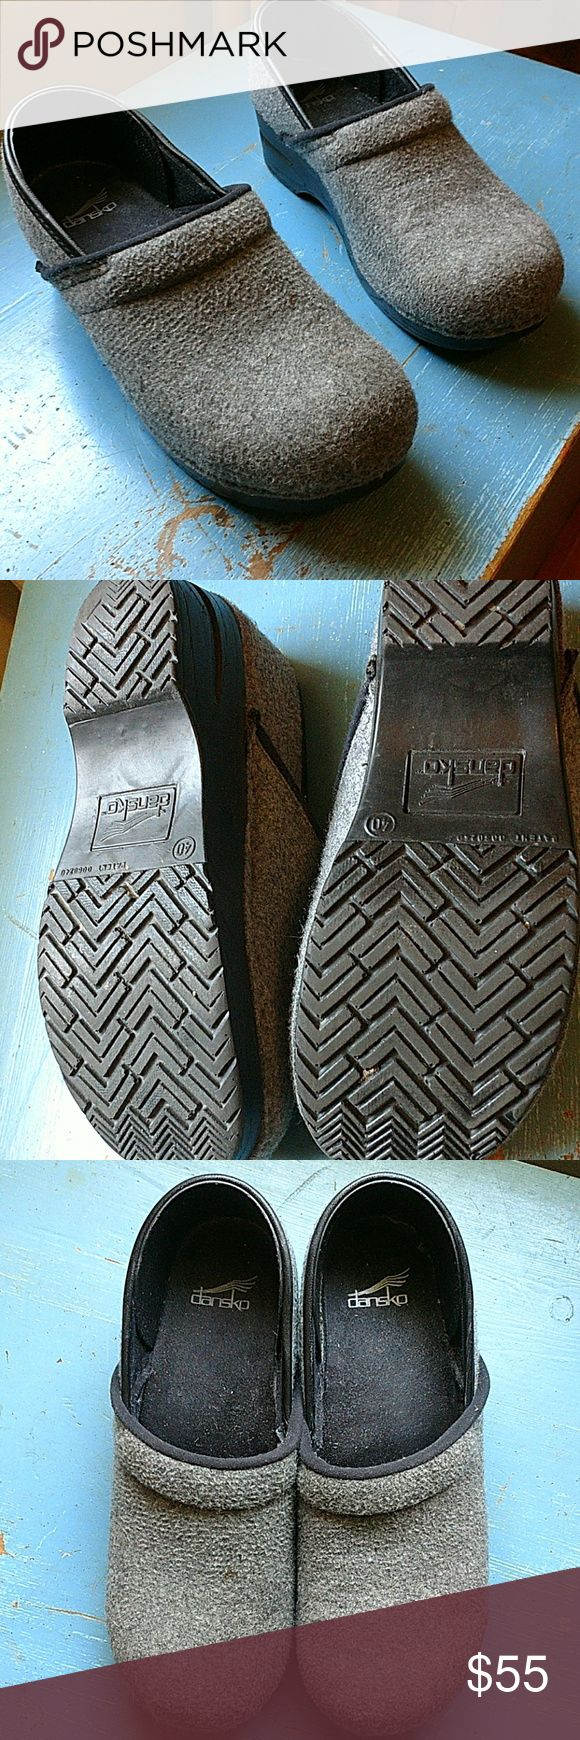 Gray felt Dansko clogs size 40 Worn handful of times Excellent condition Smokefree Petfree home Dansko Shoes Mules & Clogs